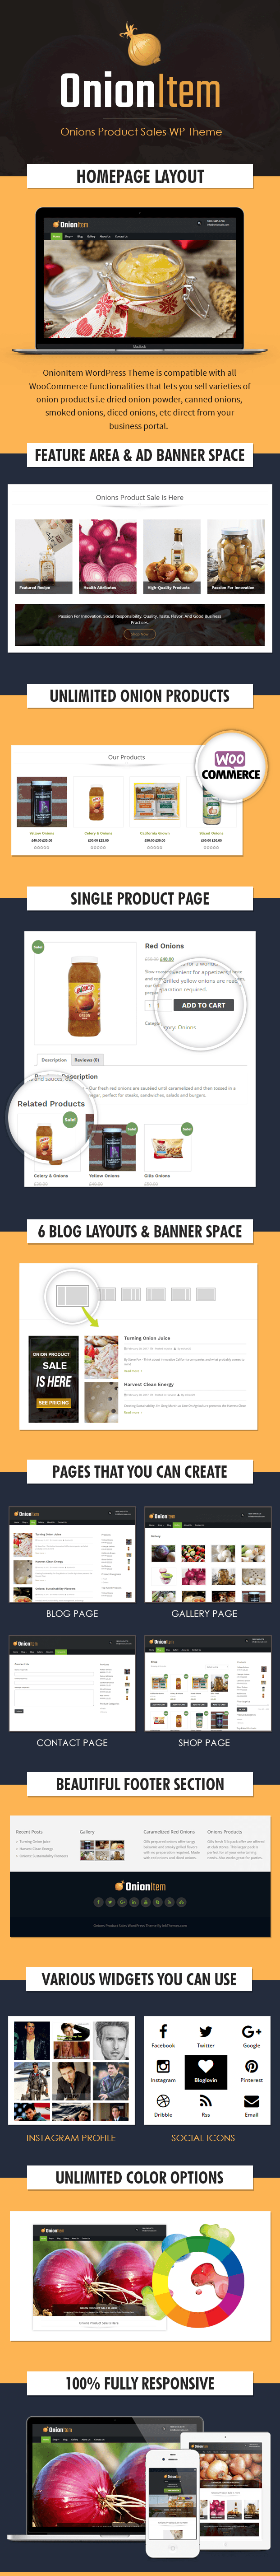 Onions Product Sales WordPress Theme Sales